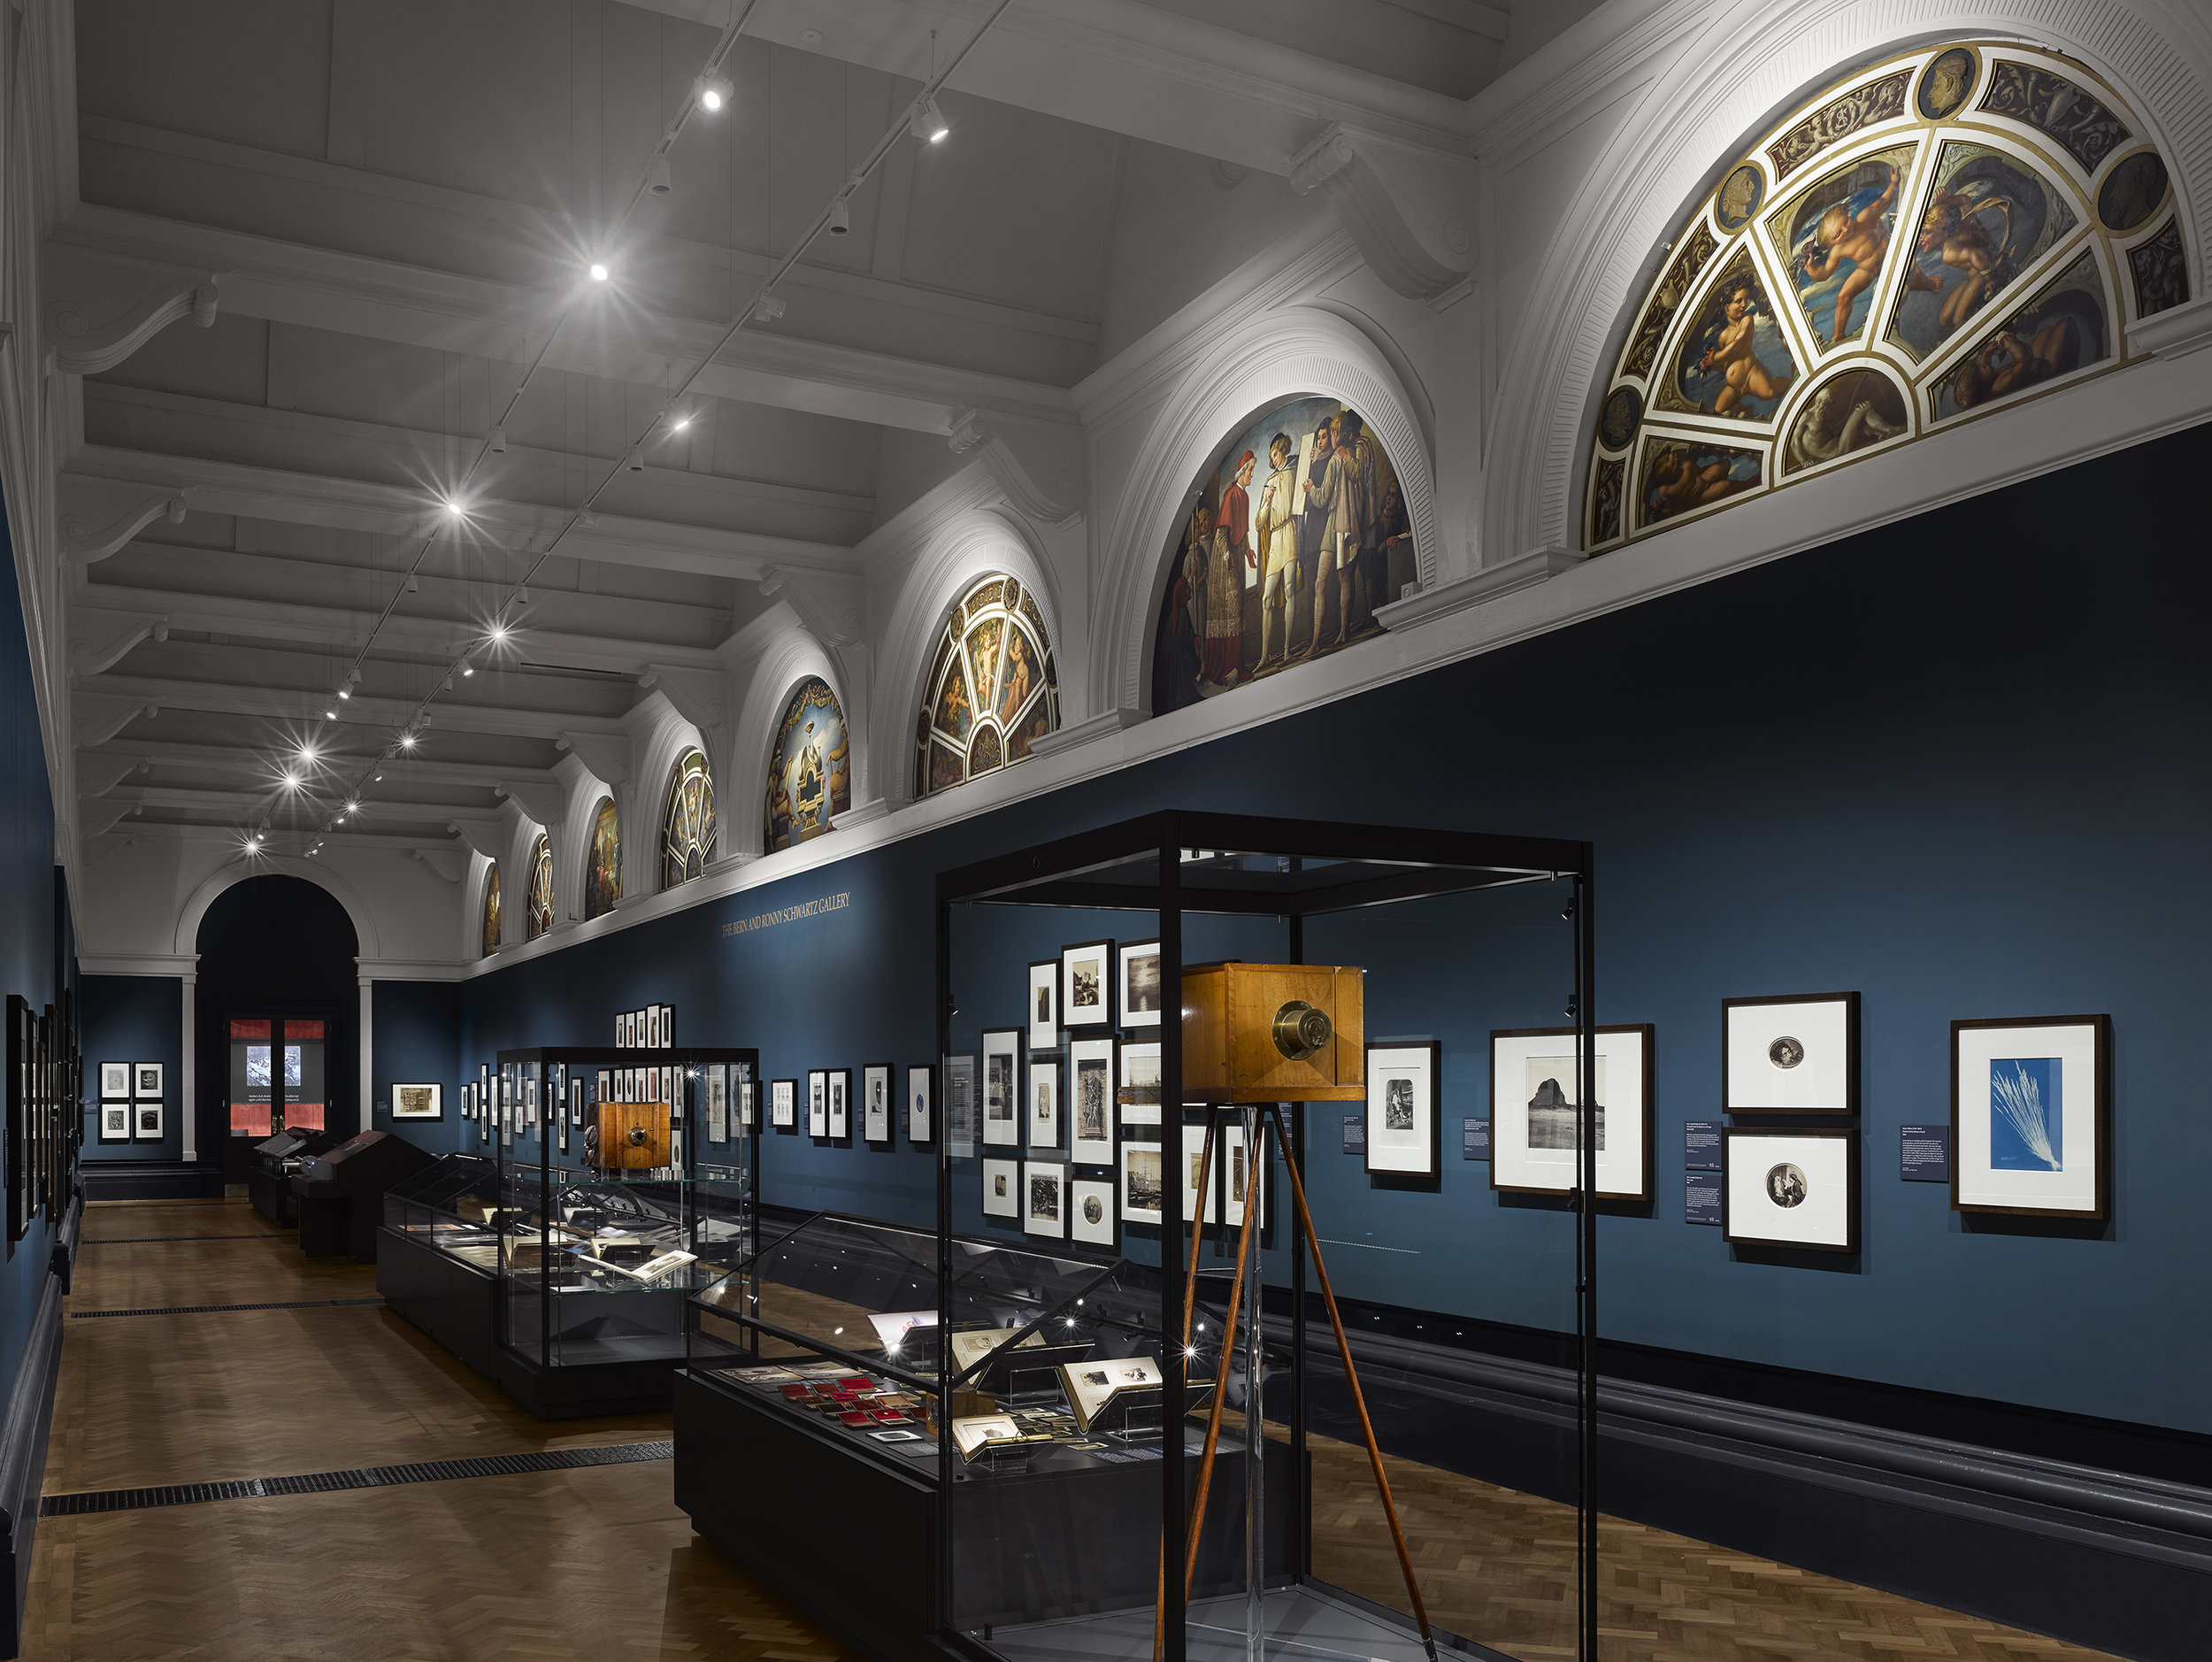 V&A Photography Centre – The Bern and Ronny Schwartz Gallery © Will Pryce